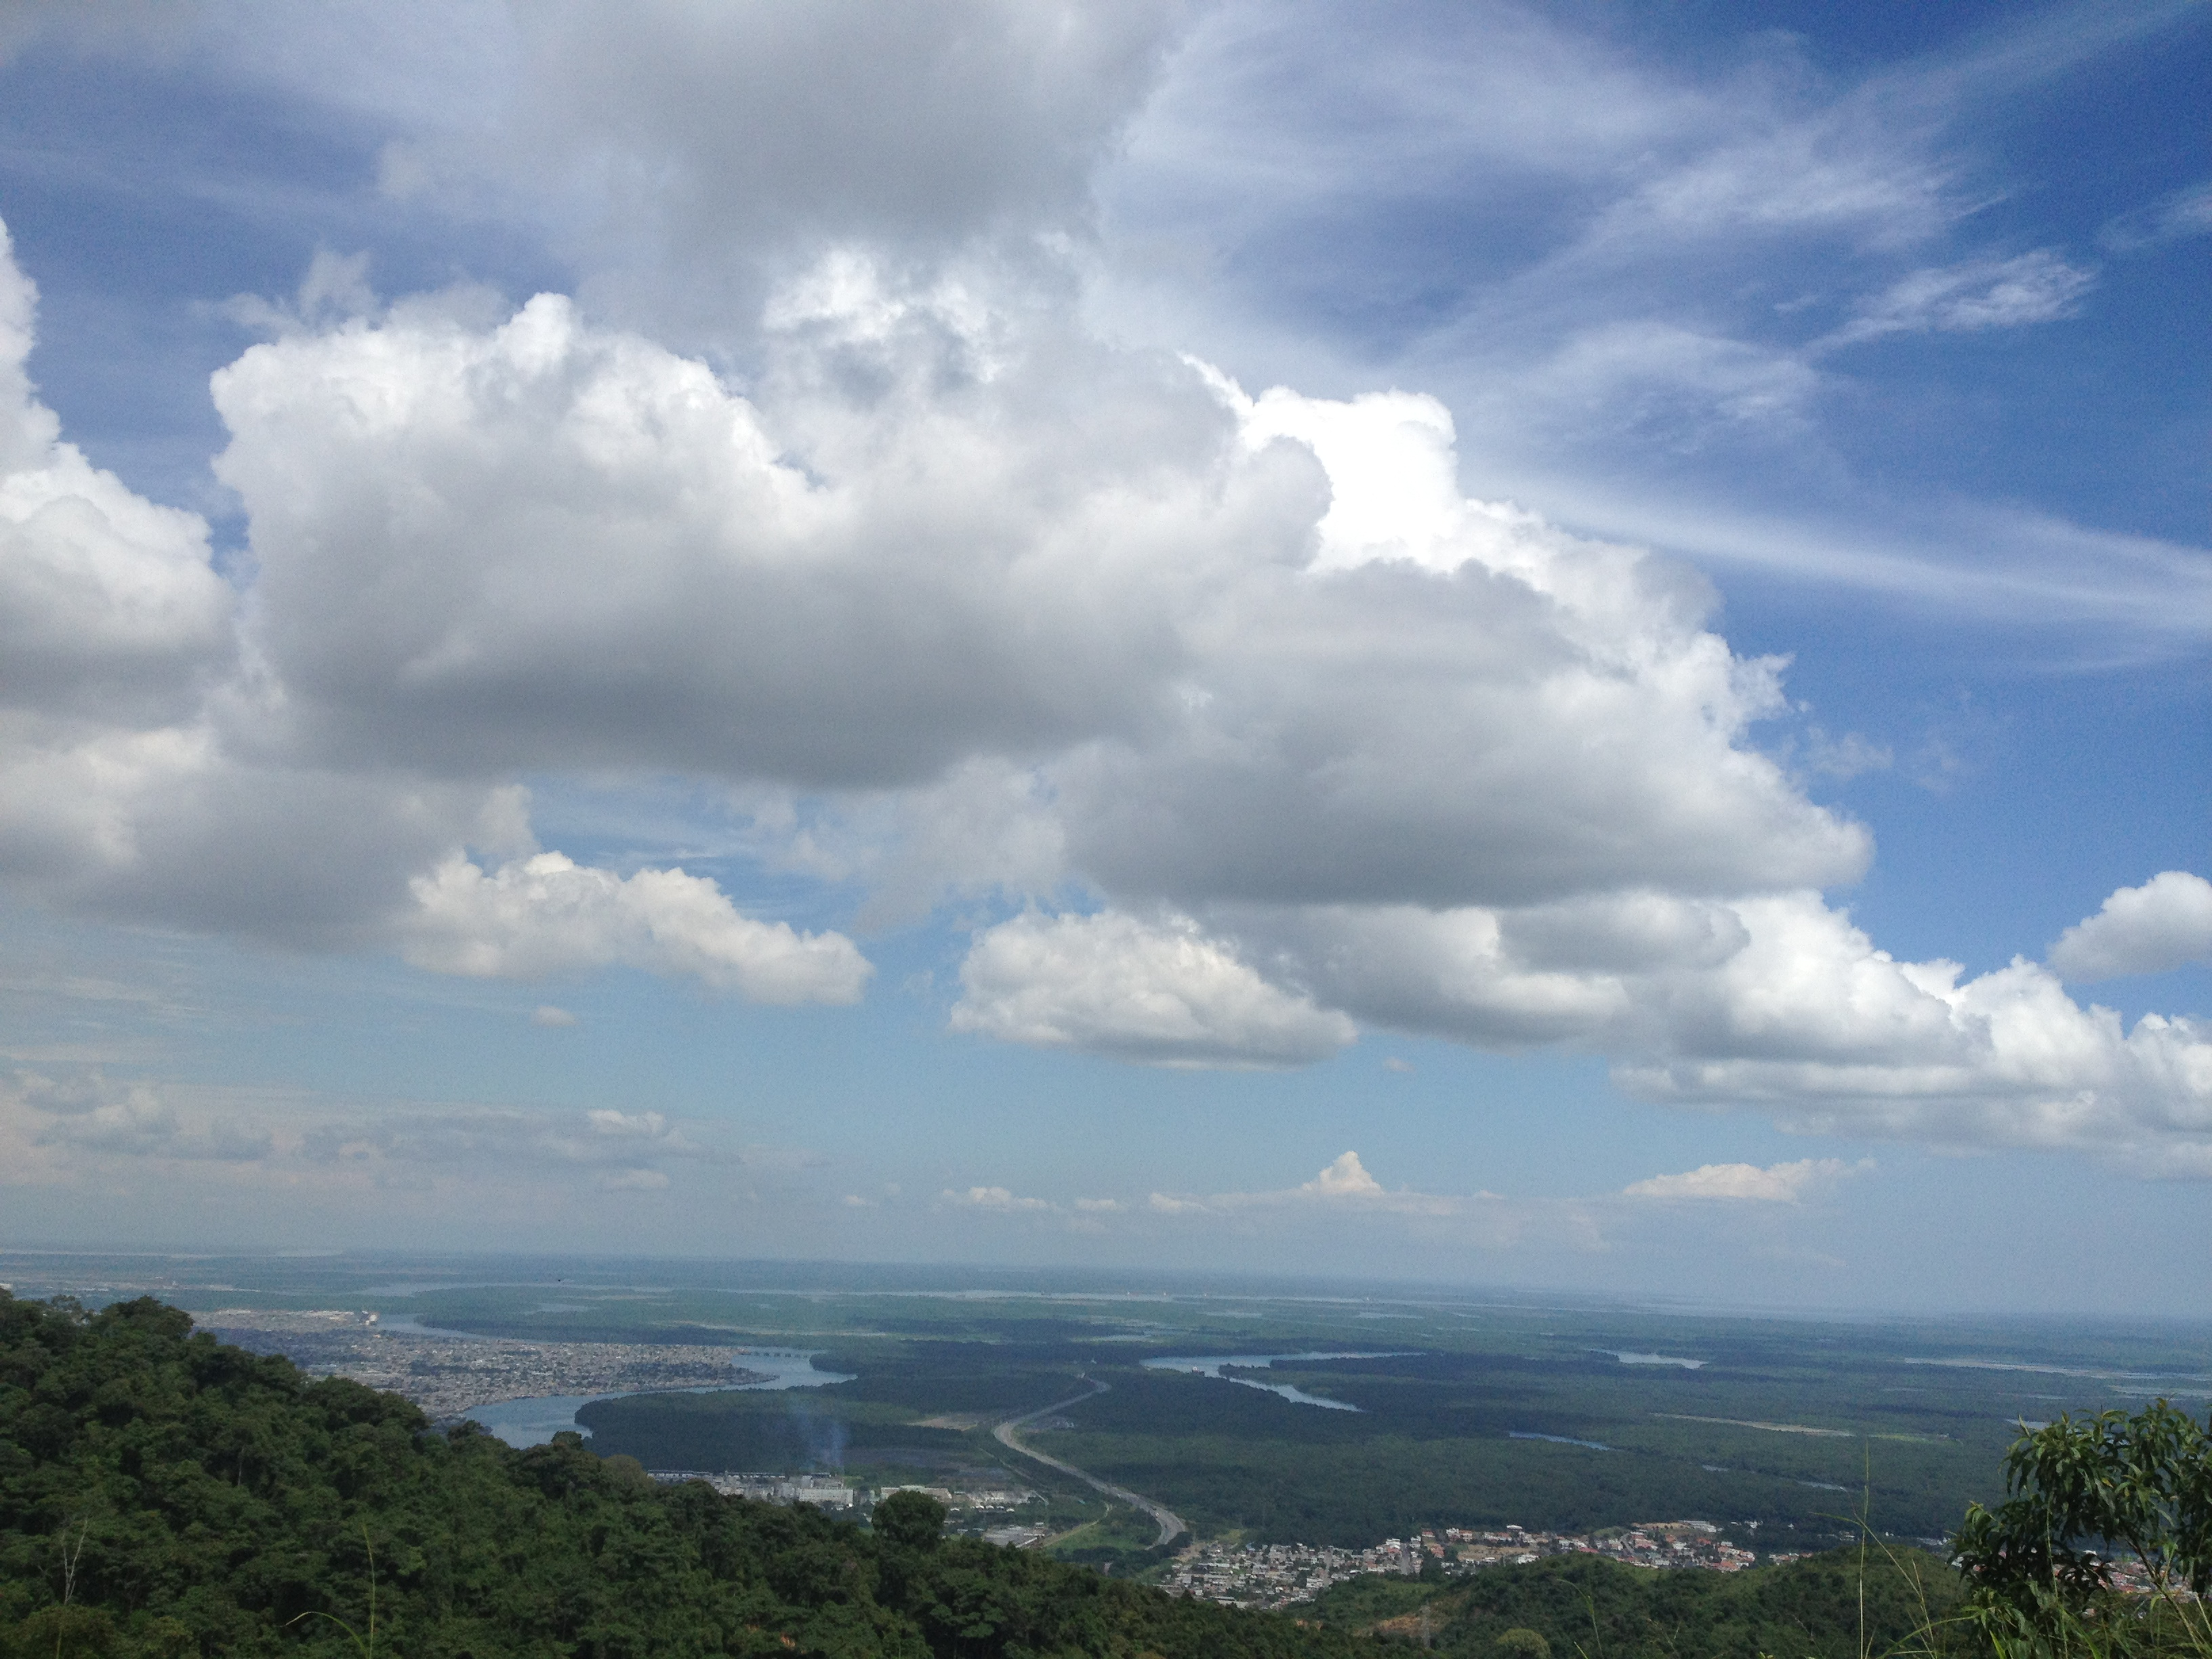 Blue hill, Azul, Clouds, Landscape, Sky, HQ Photo